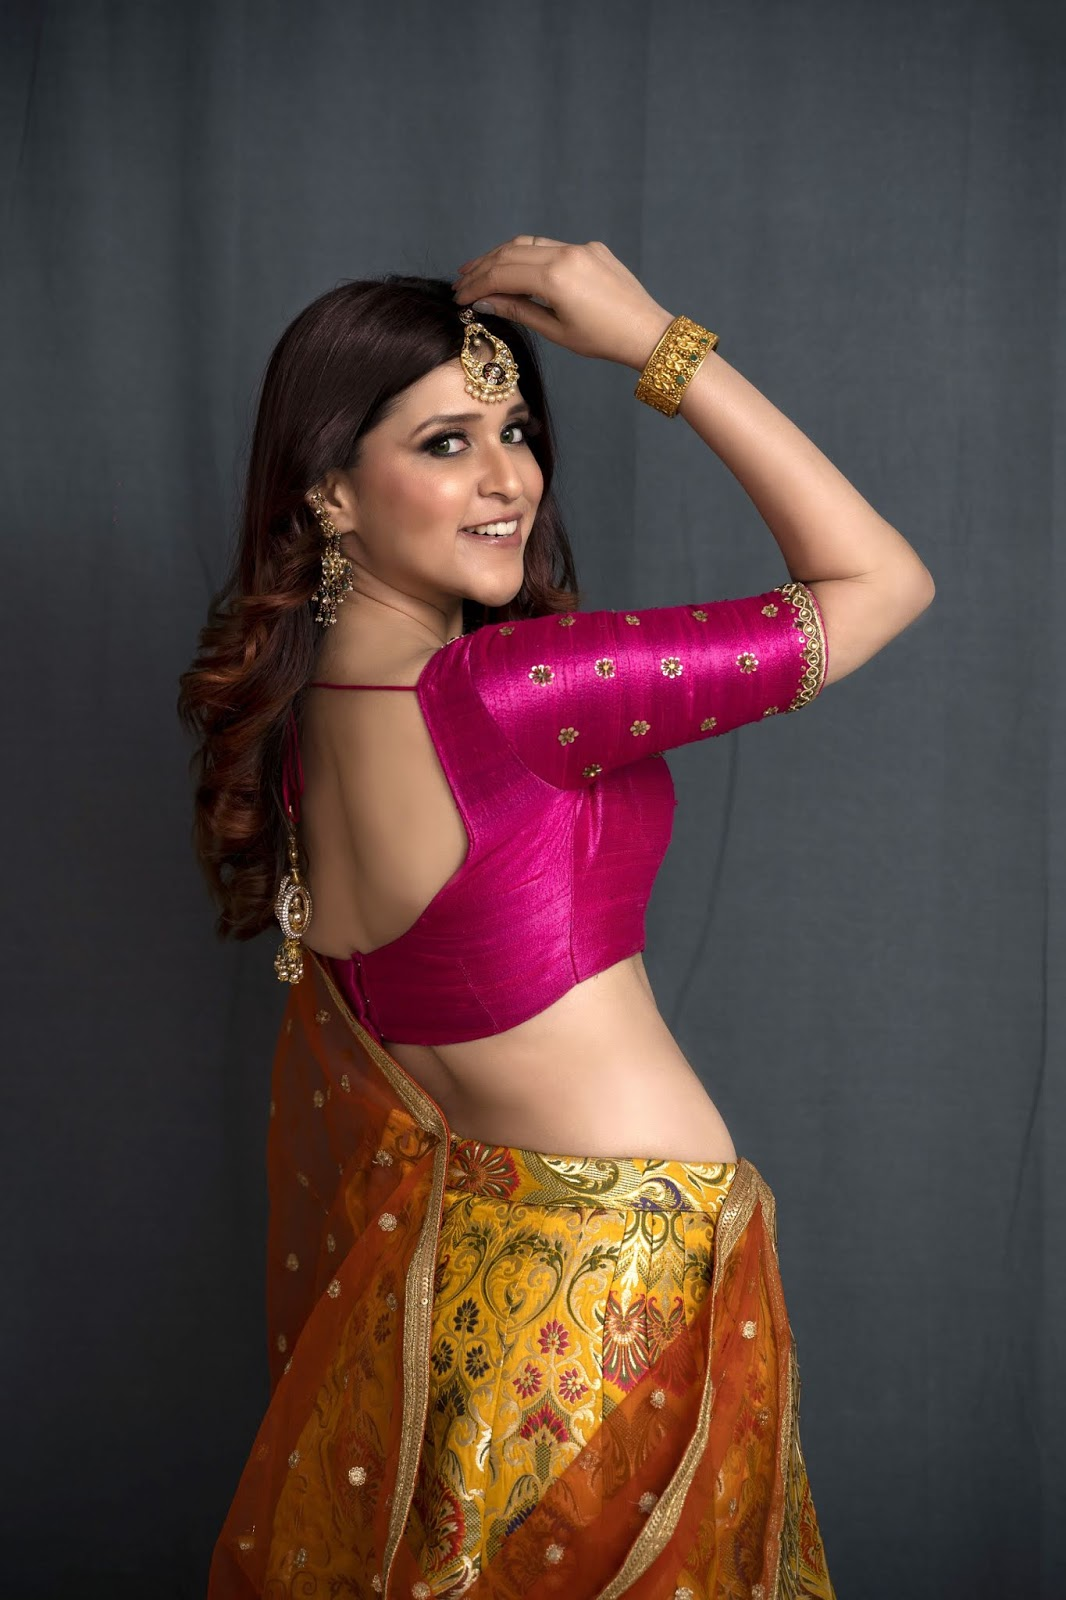 Mannara Chopra New Sizzling Photoshoot In Indian Oriental Outfit